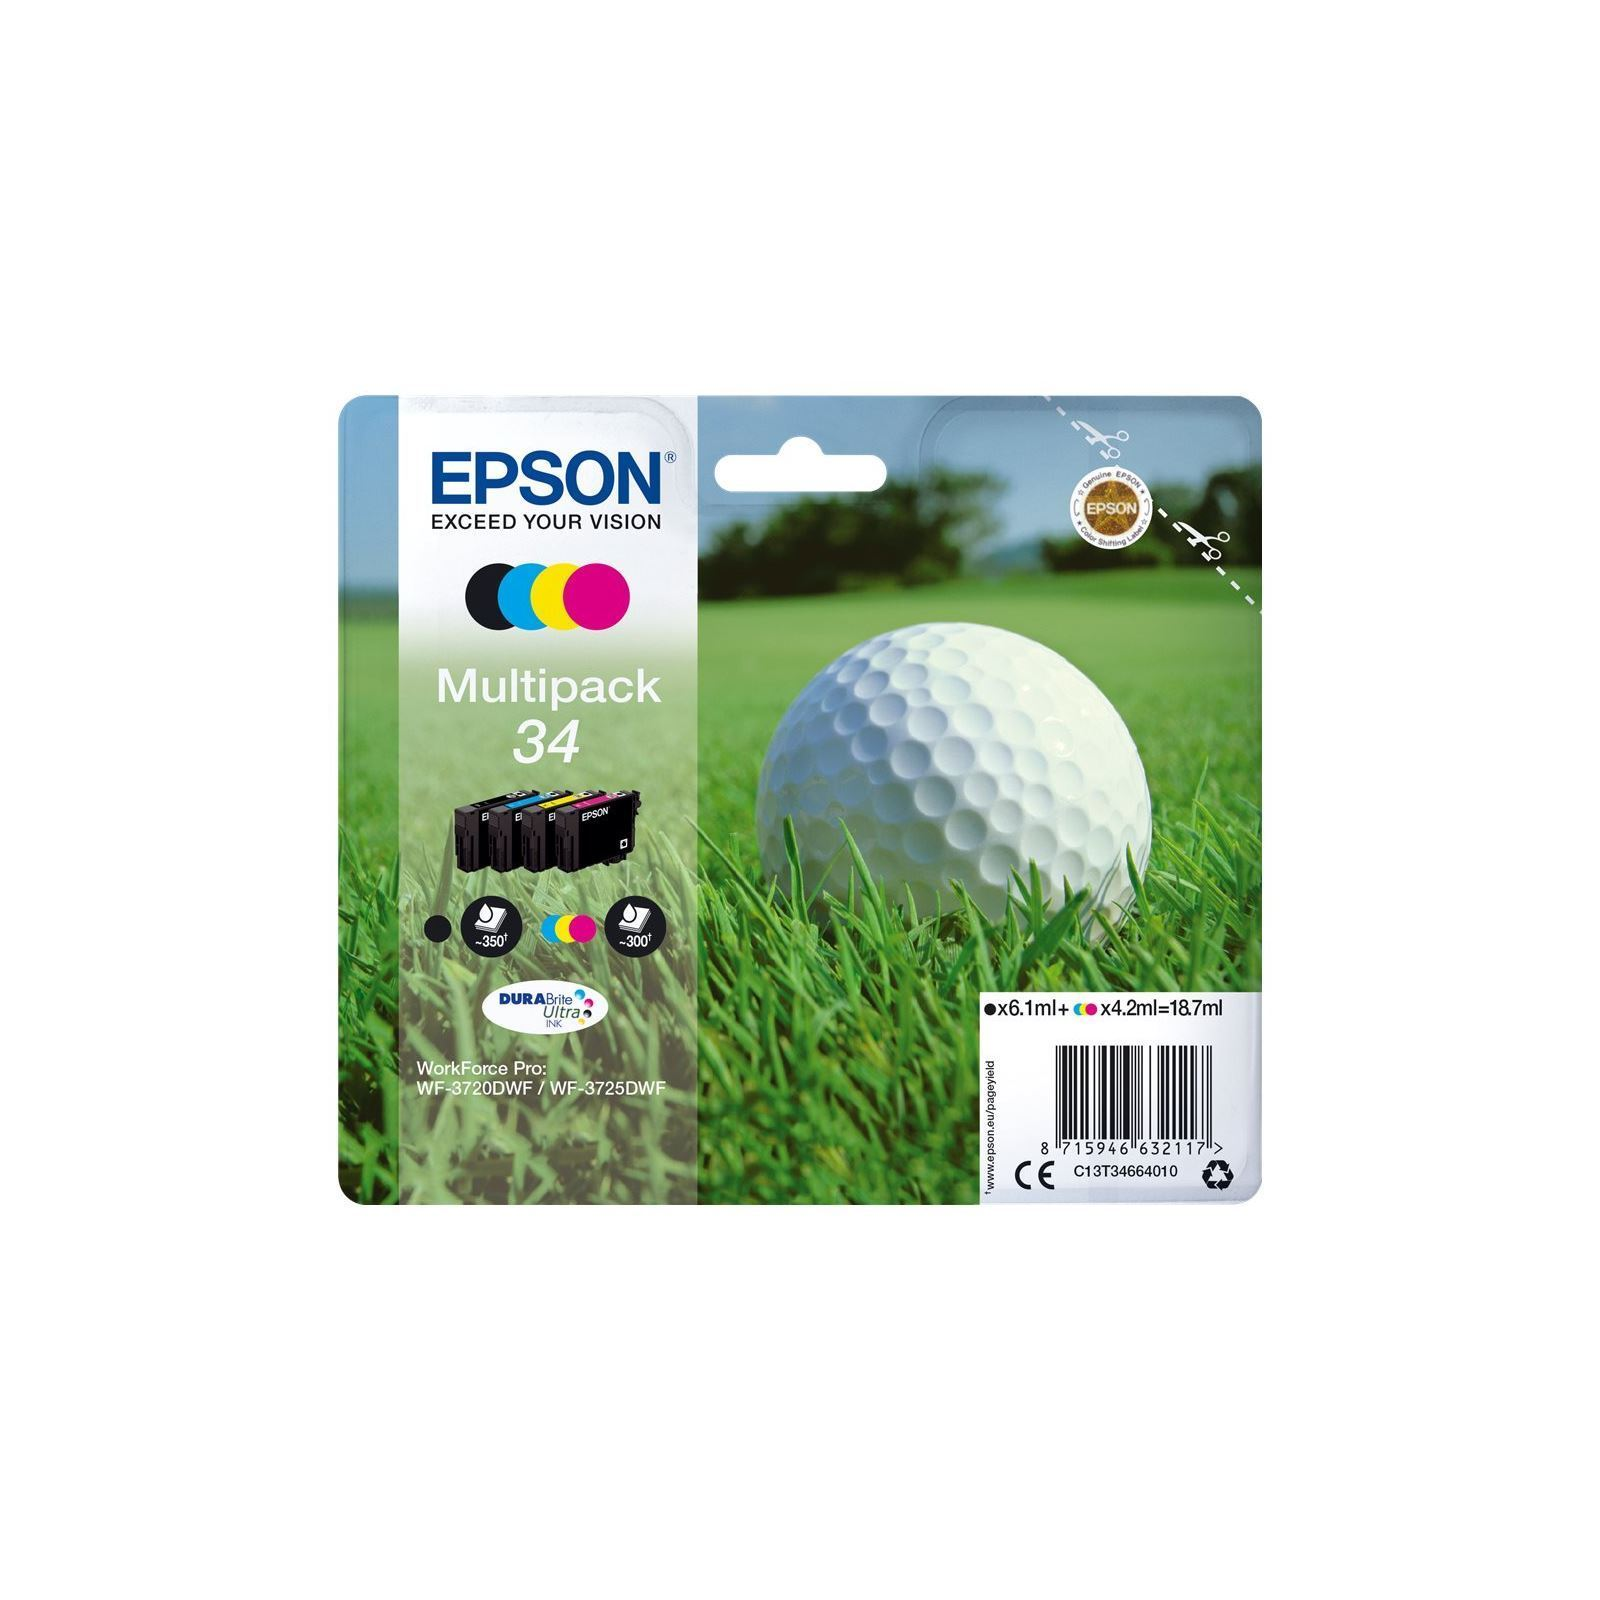 Epson Singlepack 4 Colour 34 DURABrite Ultra Ink